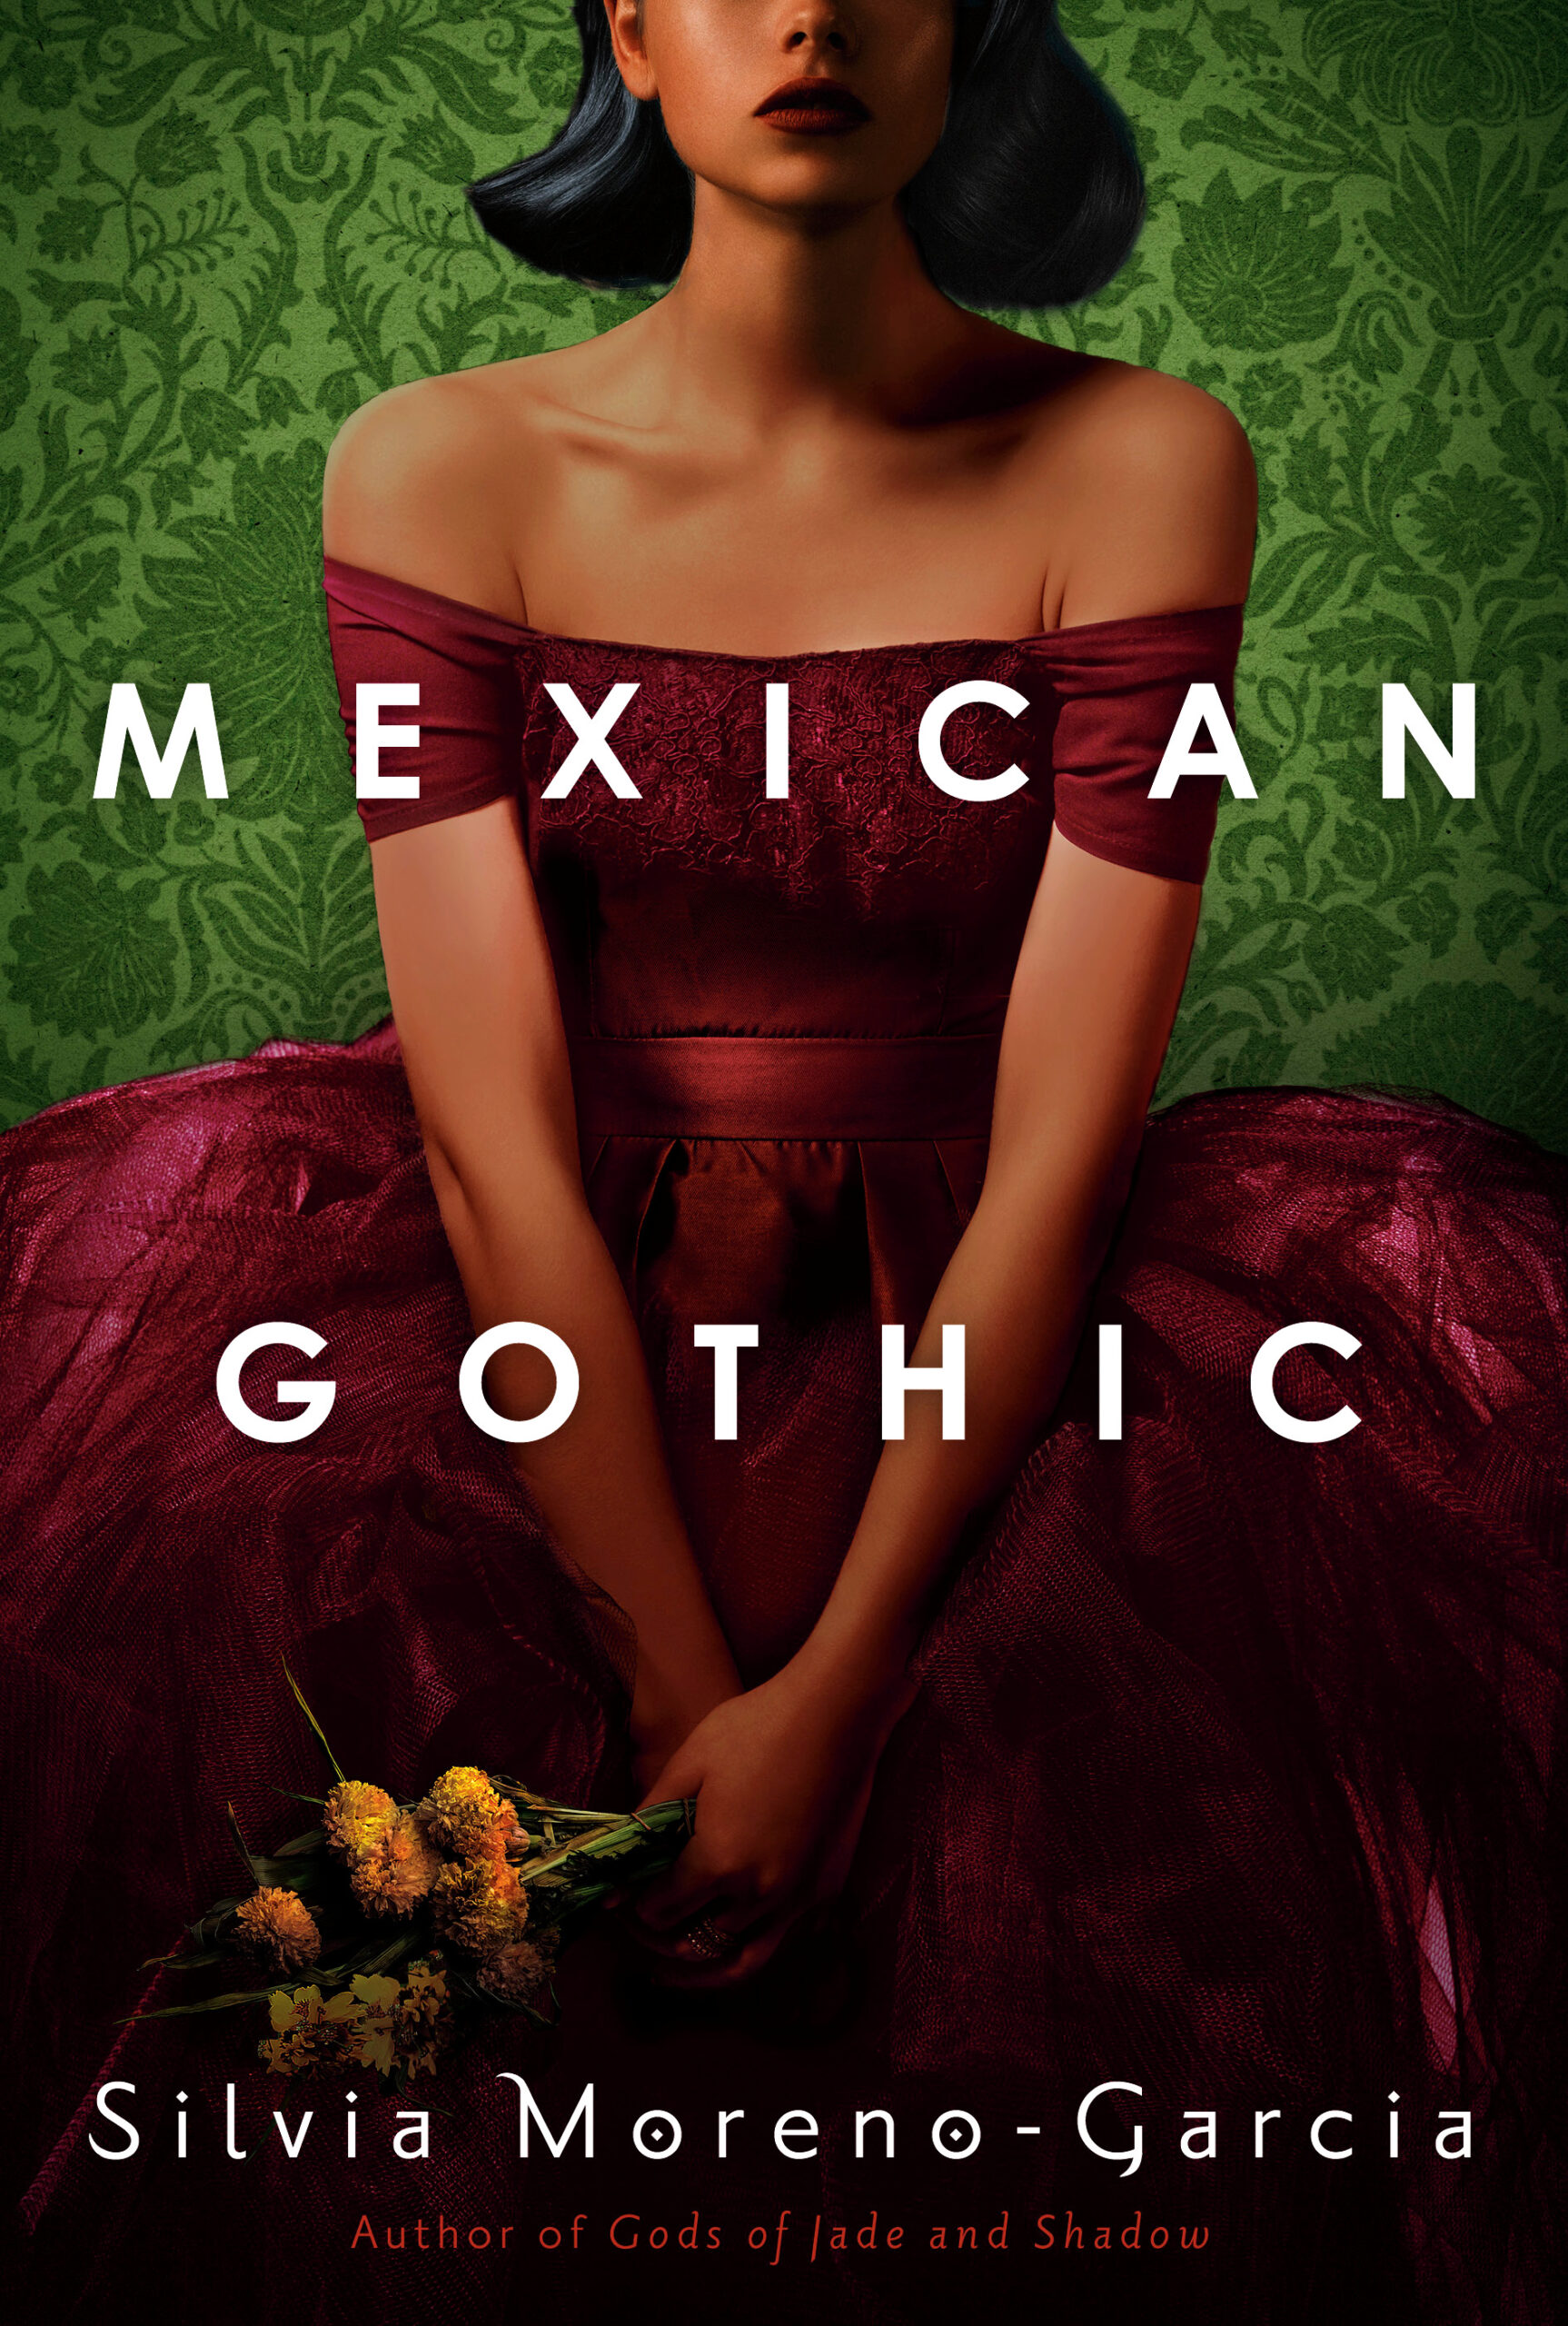 MEXICAN GOTHIC_Book Club Picks